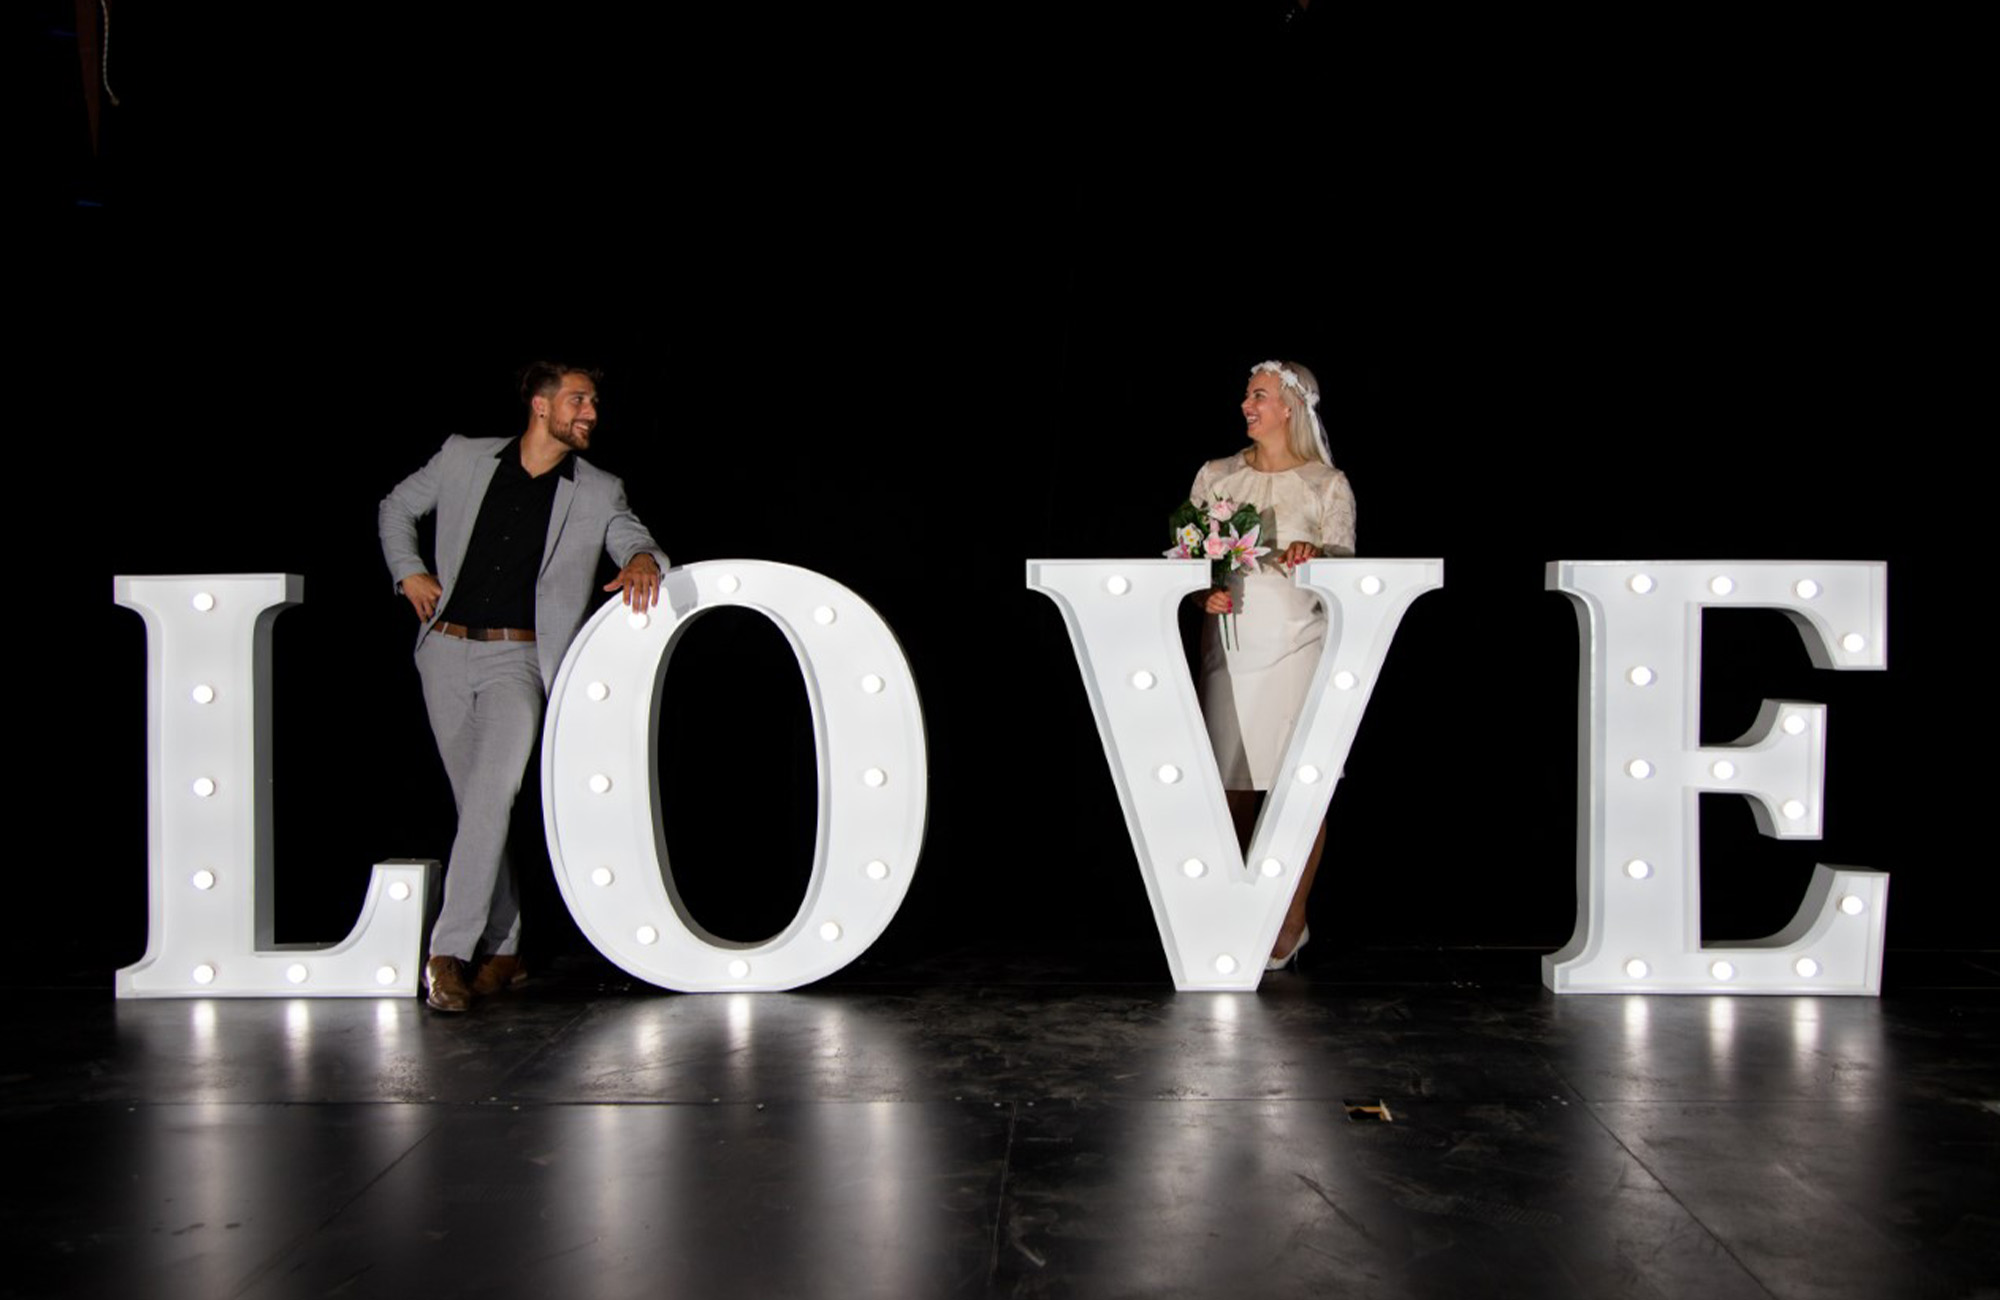 Front Row wedding decorations for hire - LED Letters